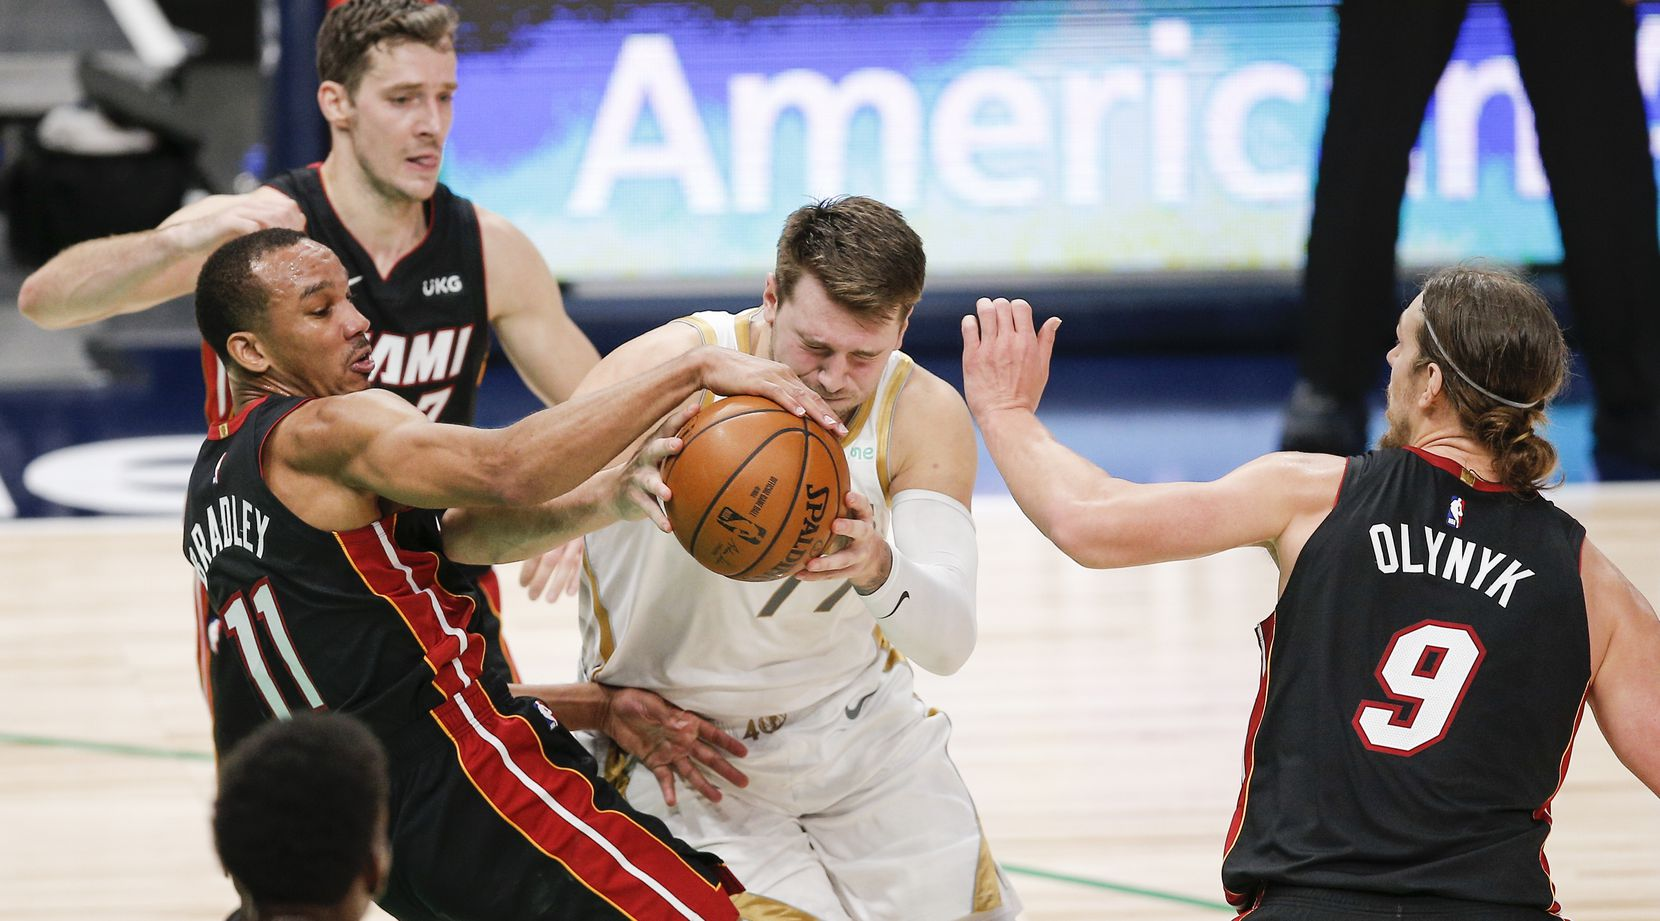 Dallas Mavericks guard Luka Doncic, center, battles Miami Heat guards Avery Bradley (11), Goran Dragic (7) and forward Kelly Olynyk (9) for space during the second half of an NBA basketball game, Friday, January 1, 2021.  Dallas won 93-83. (Brandon Wade/Special Contributor)